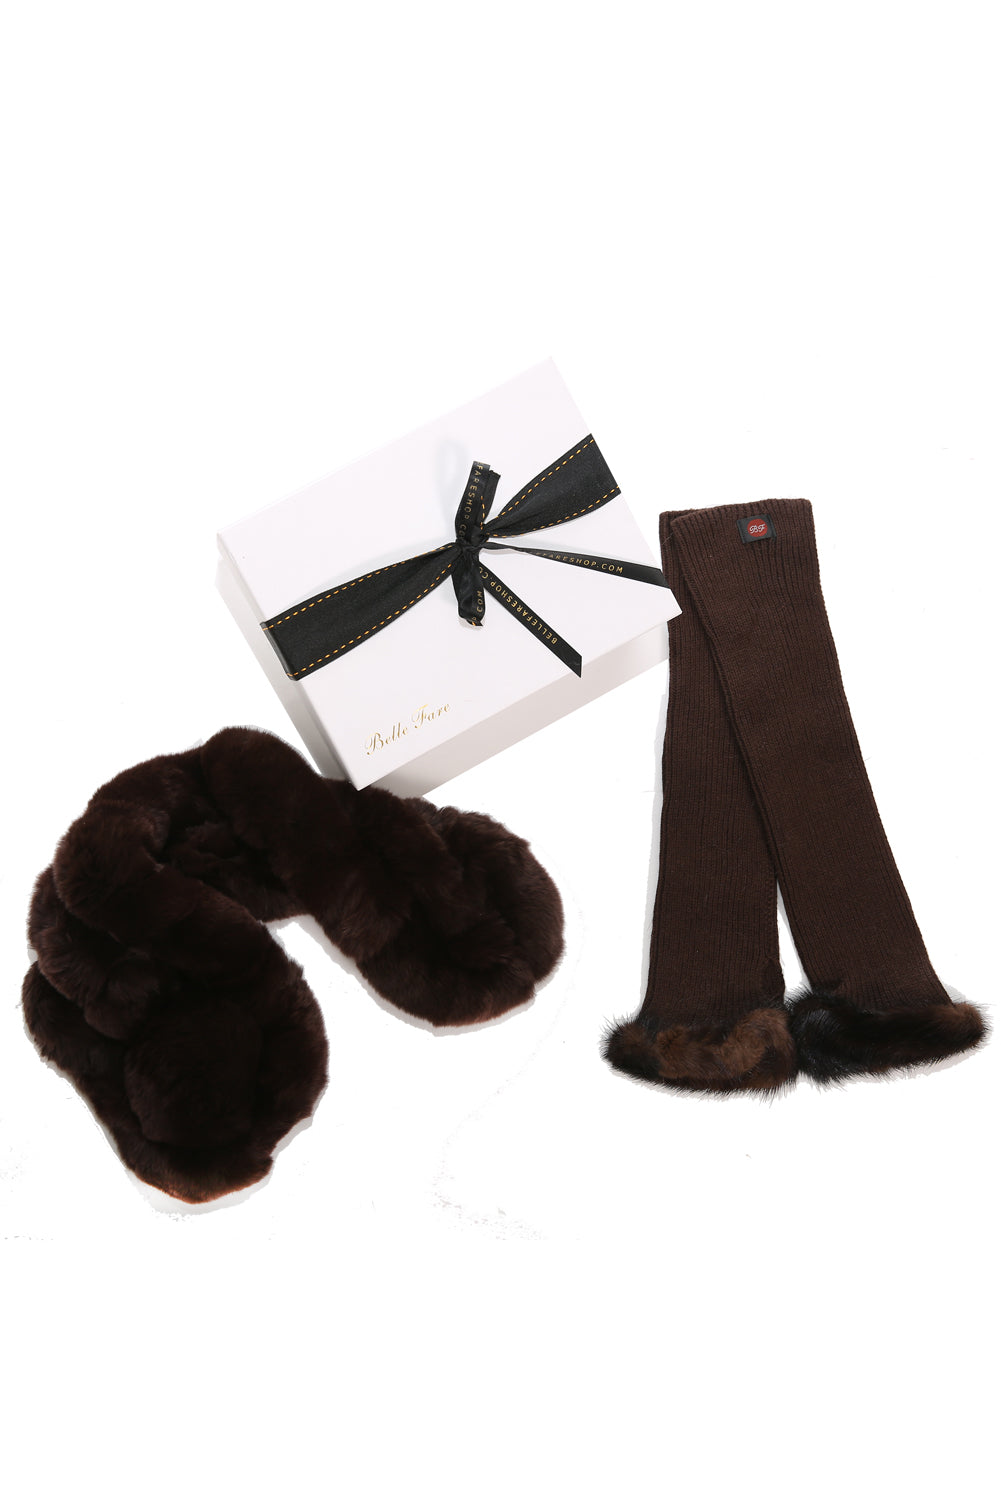 [Special] Rex Neck Warmer and Cashmere Gloves (Brown)